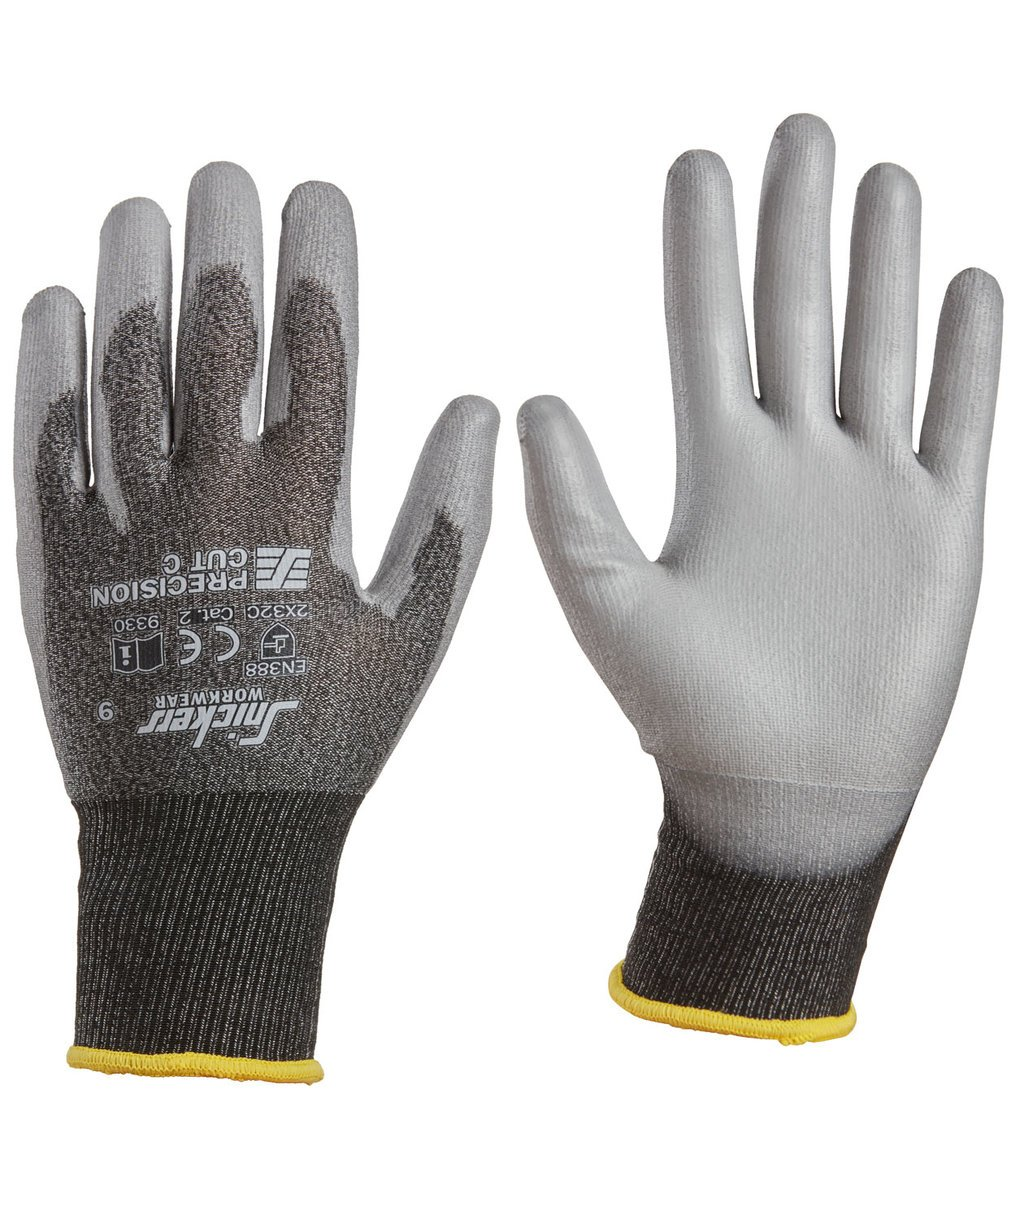 Snickers Precision Cut C cut protection gloves, Grey